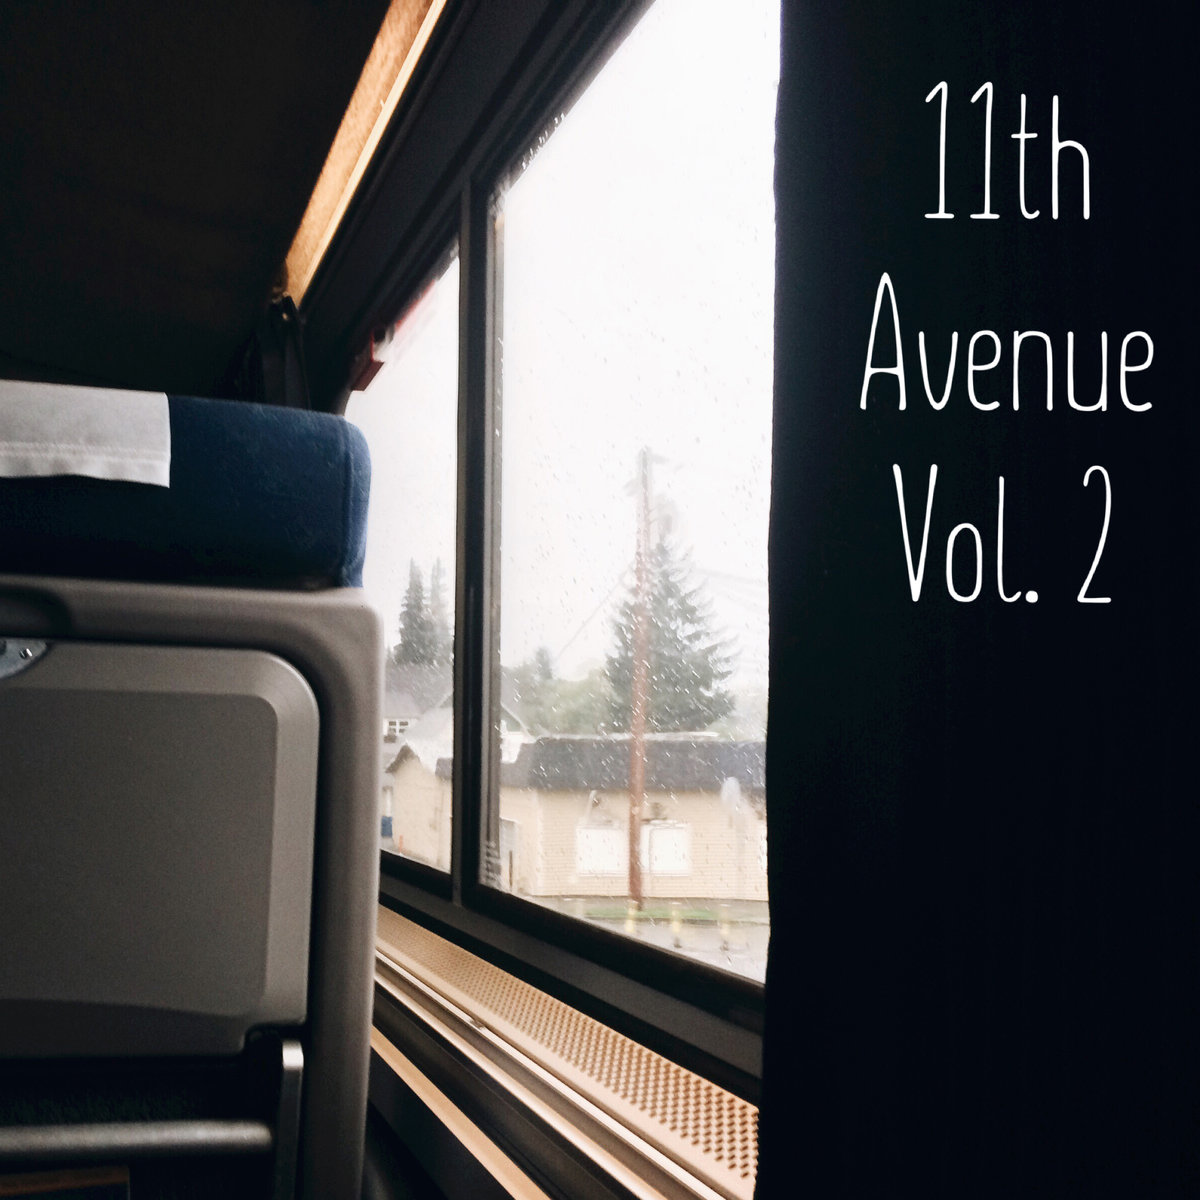 Maya Hall - Summer Ashes @ '11th Avenue Vol. 2' album (11th ave records, 11thaverecords 11th avenue)